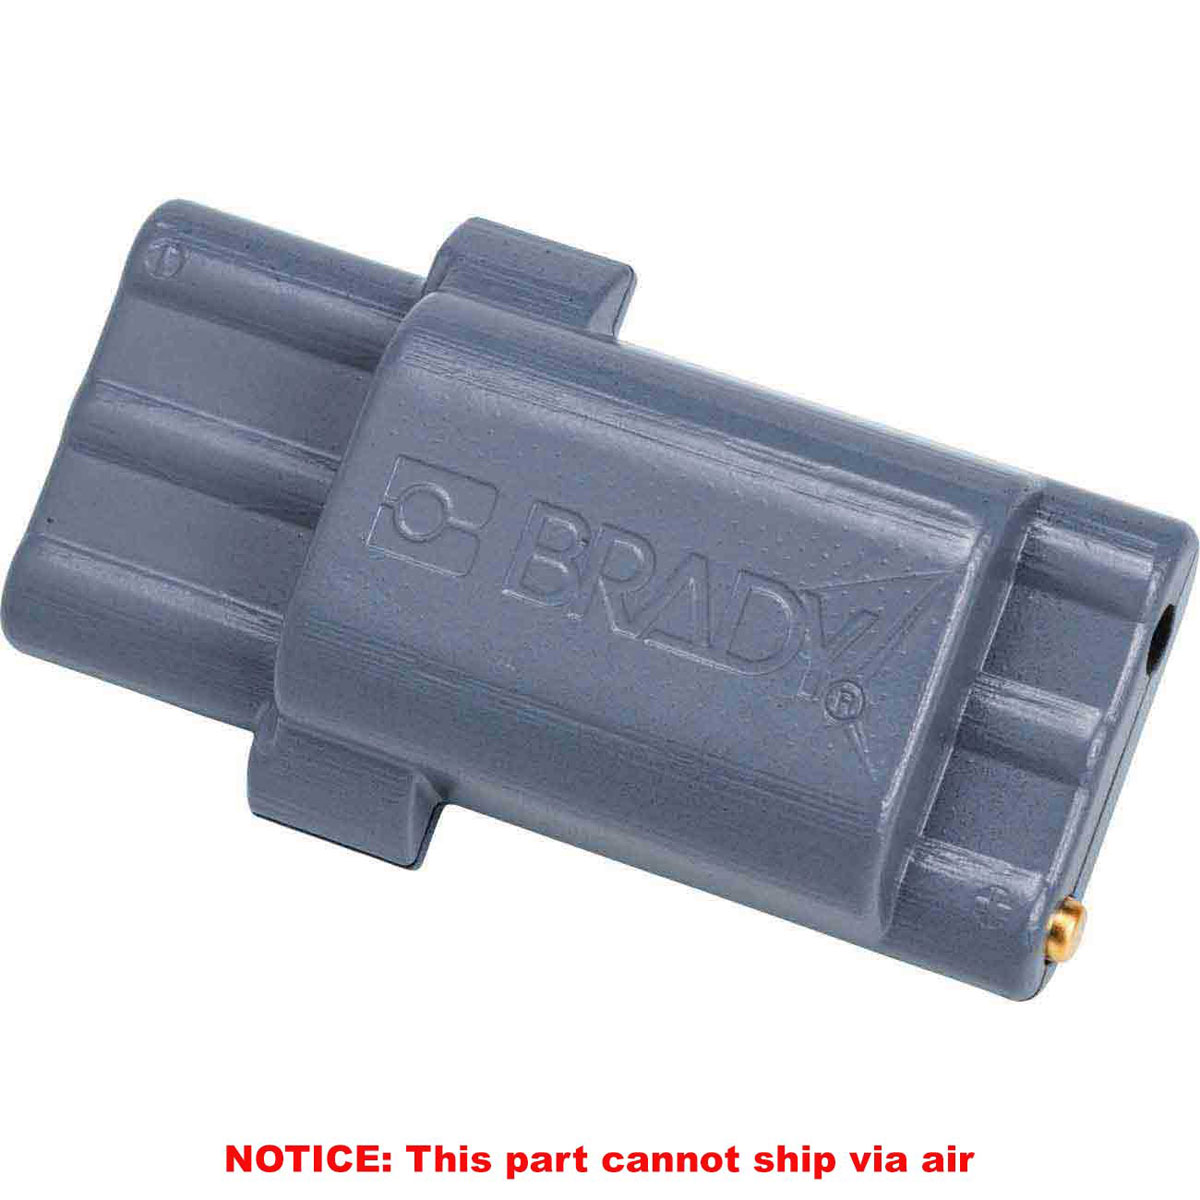 Brady® BMP21-MAGNET BMP®21 Magnet Only Accessory, For Use With BMP®21, BMP®21-PLUS and BMP21-LAB Printer